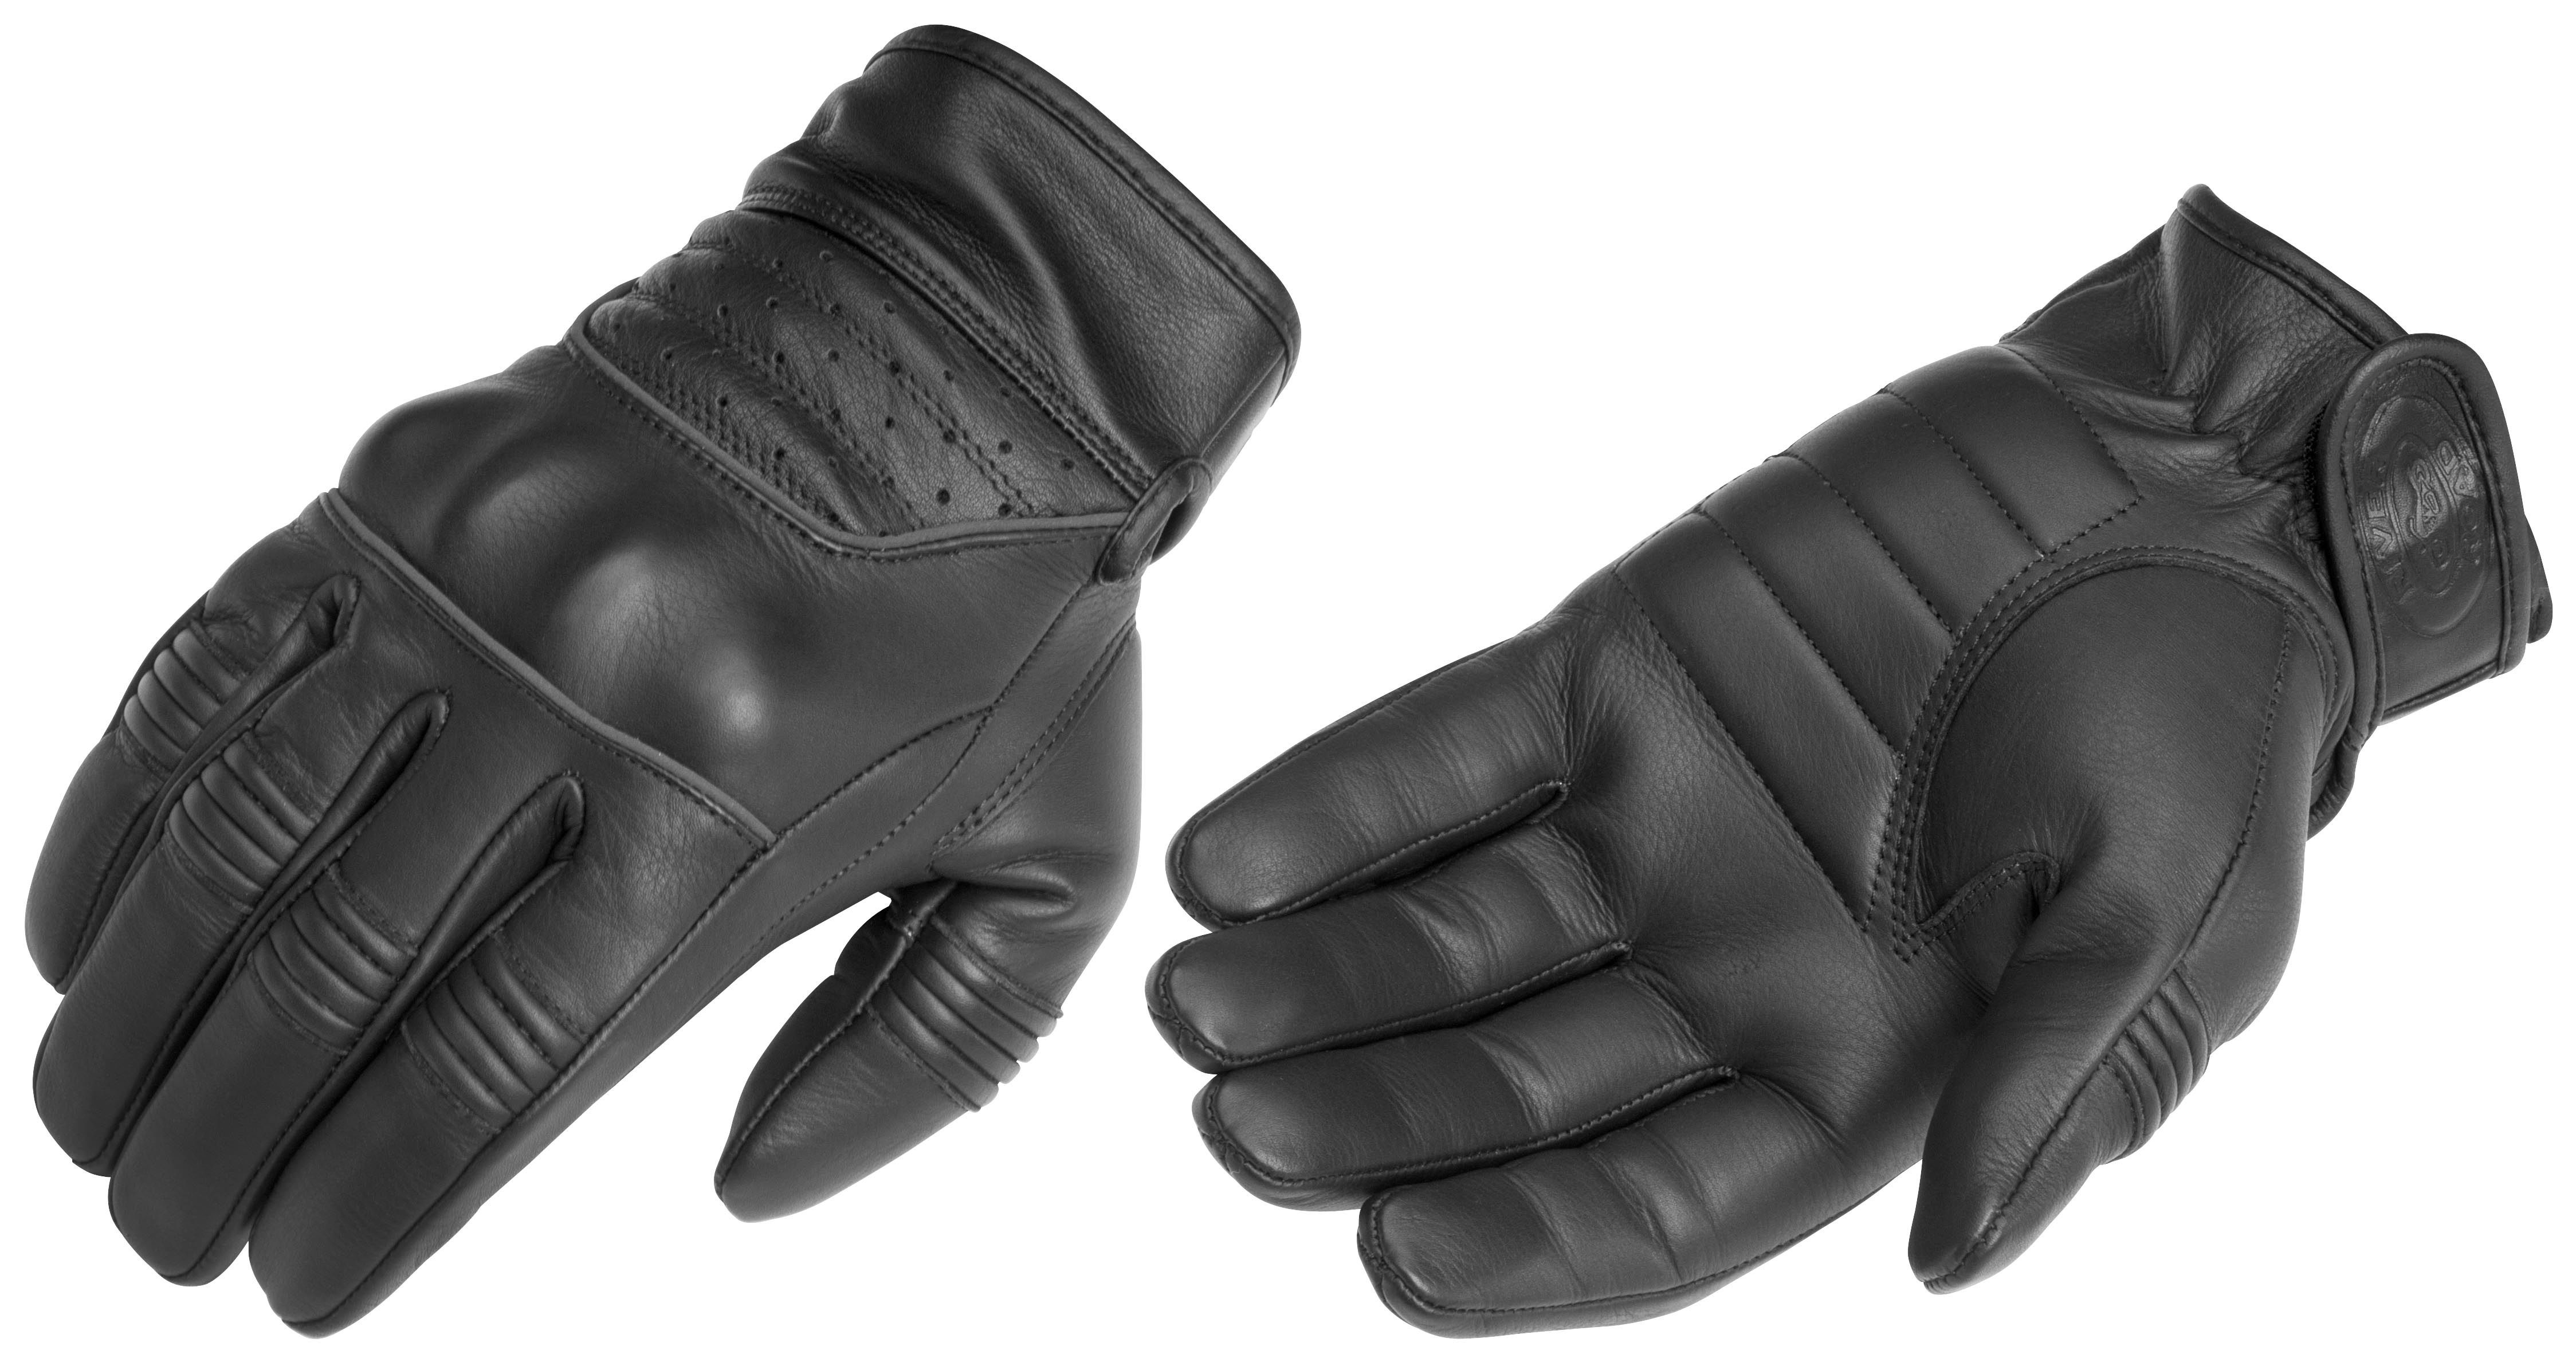 Motorcycle gloves palm protection - Motorcycle Gloves Palm Protection